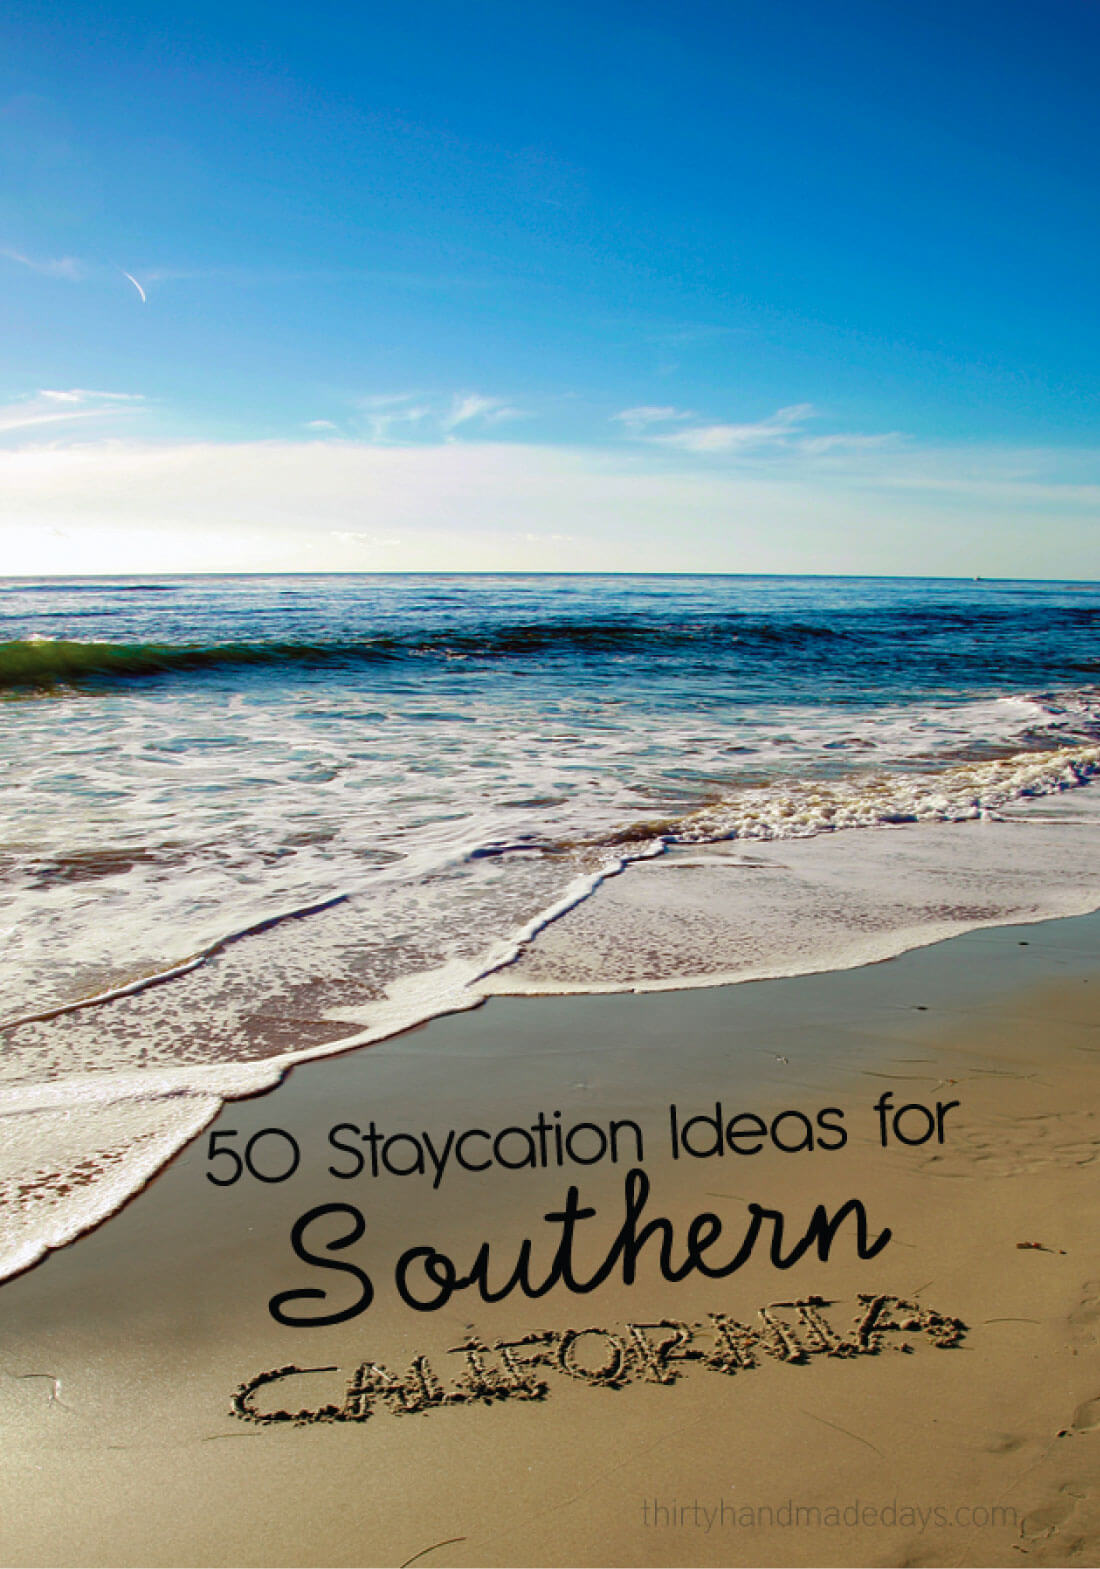 50 Staycation Ideas for Southern California - fun places to go and things to do locally.